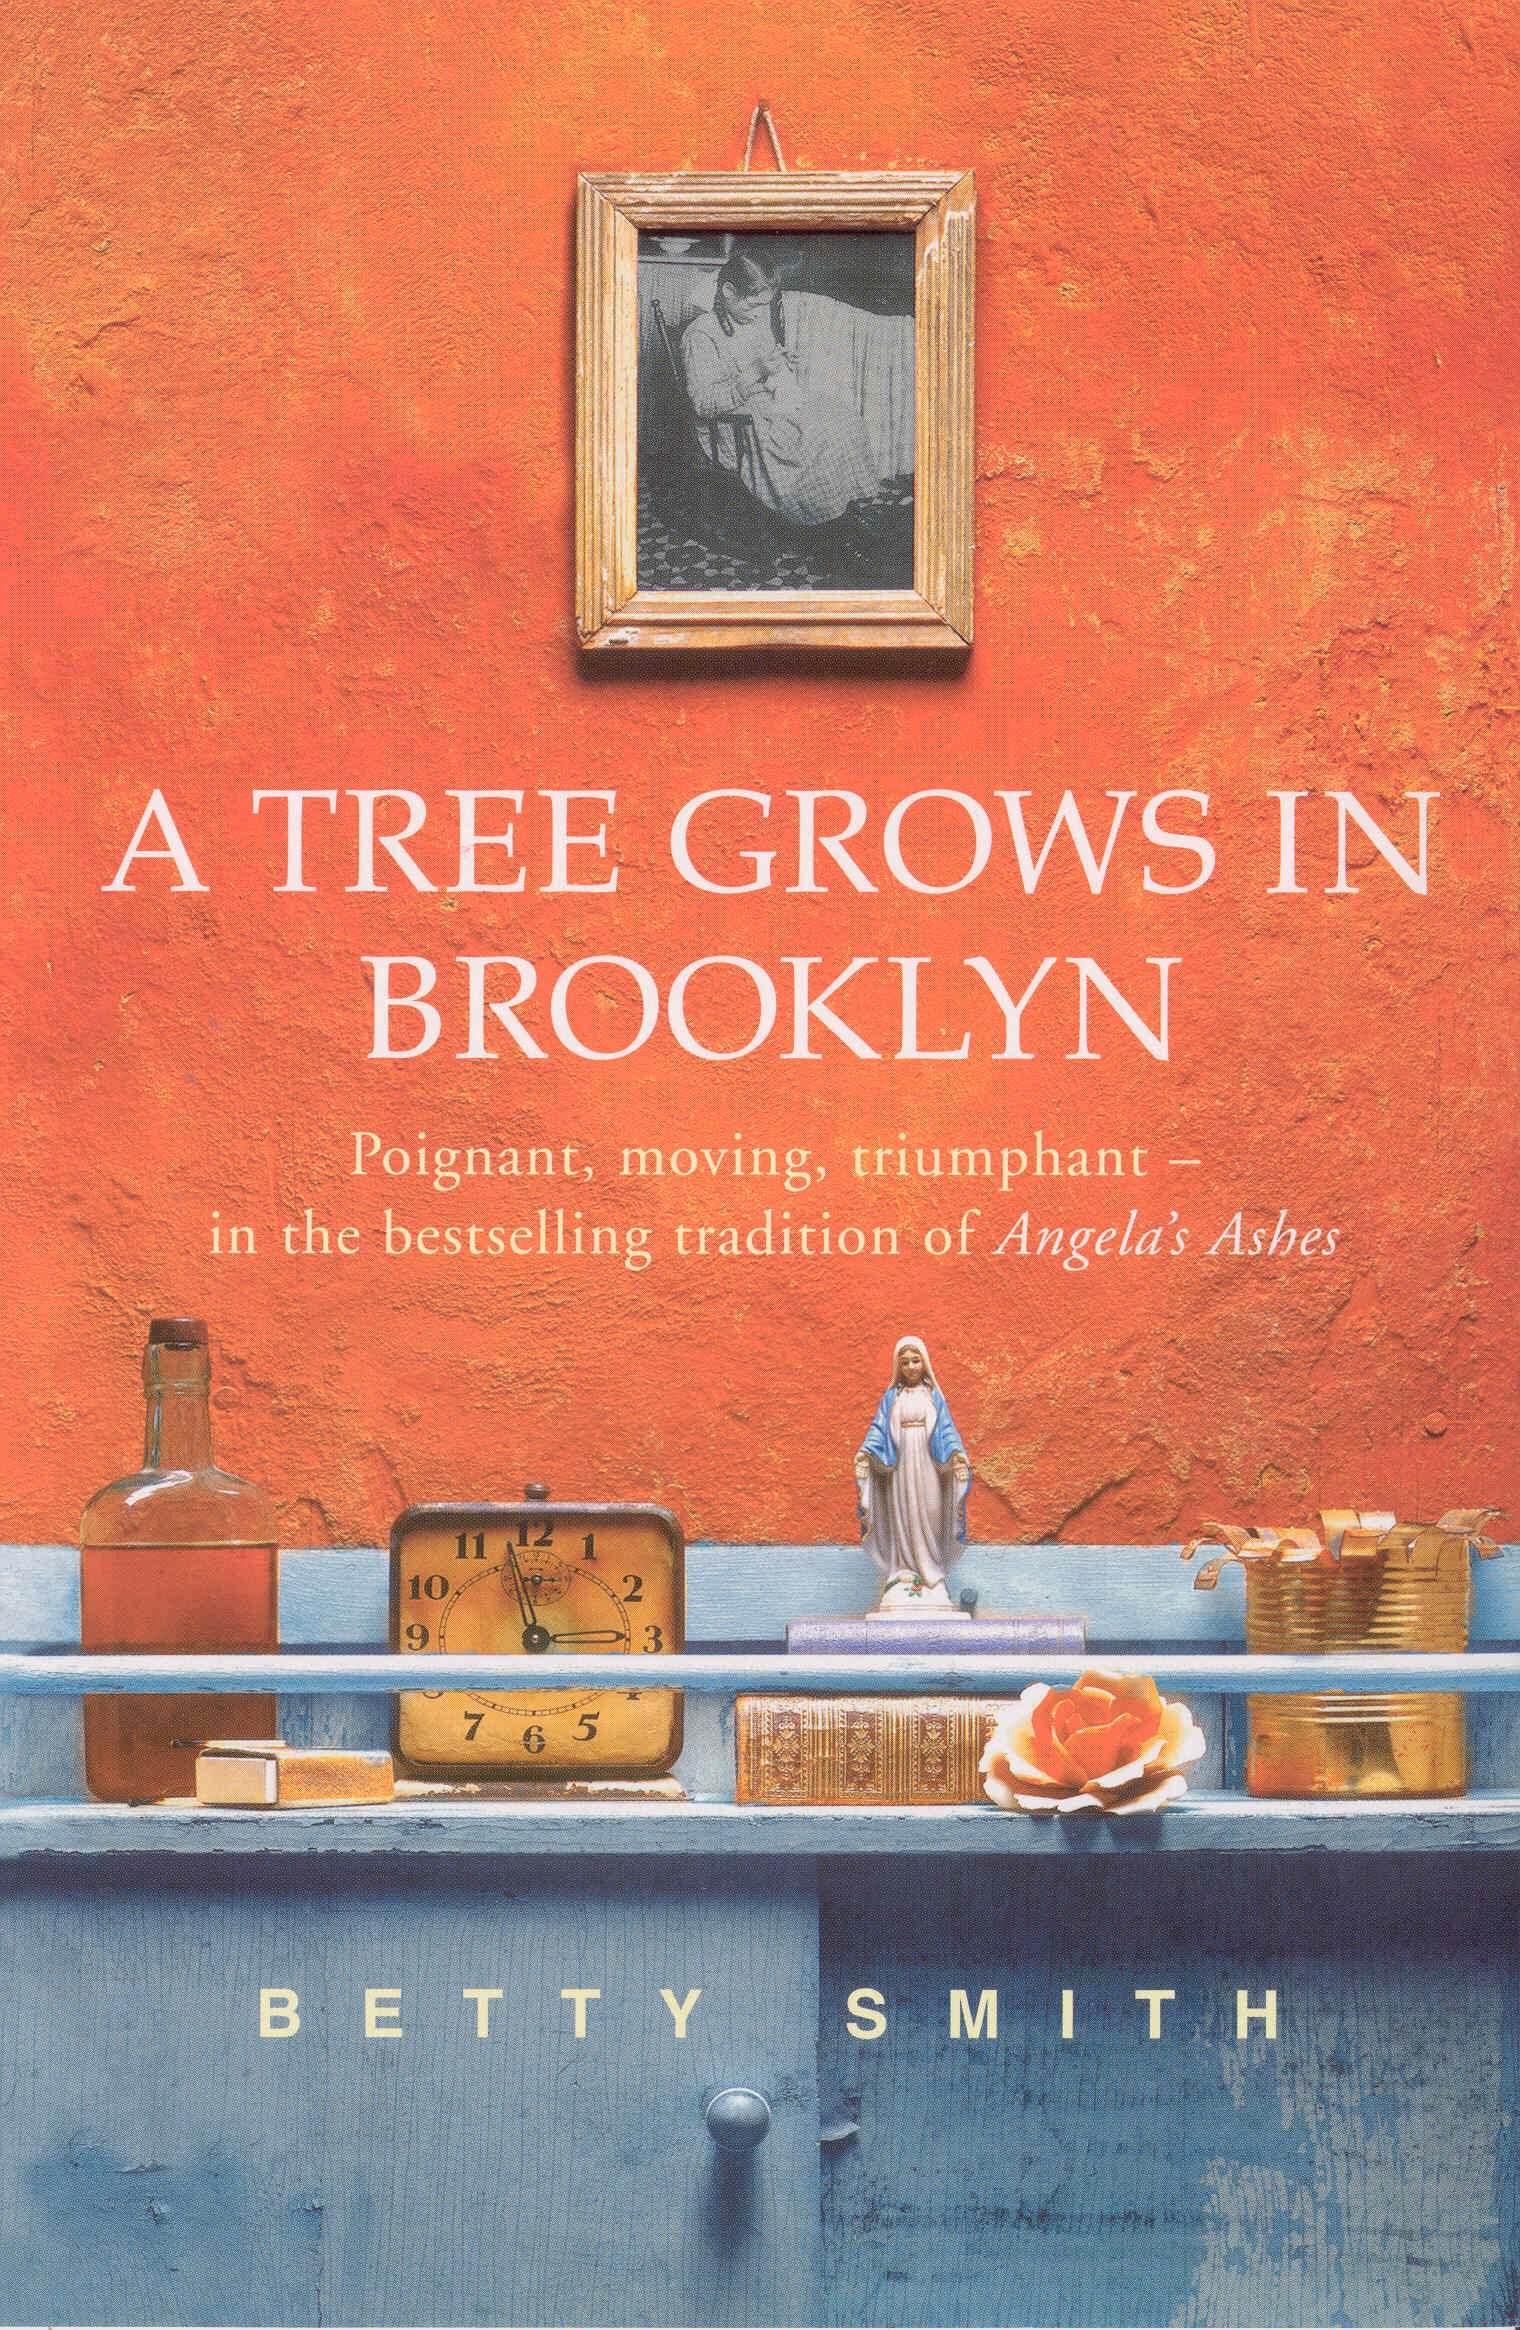 Image result for A Tree Grows in Brooklyn by Betty Smith